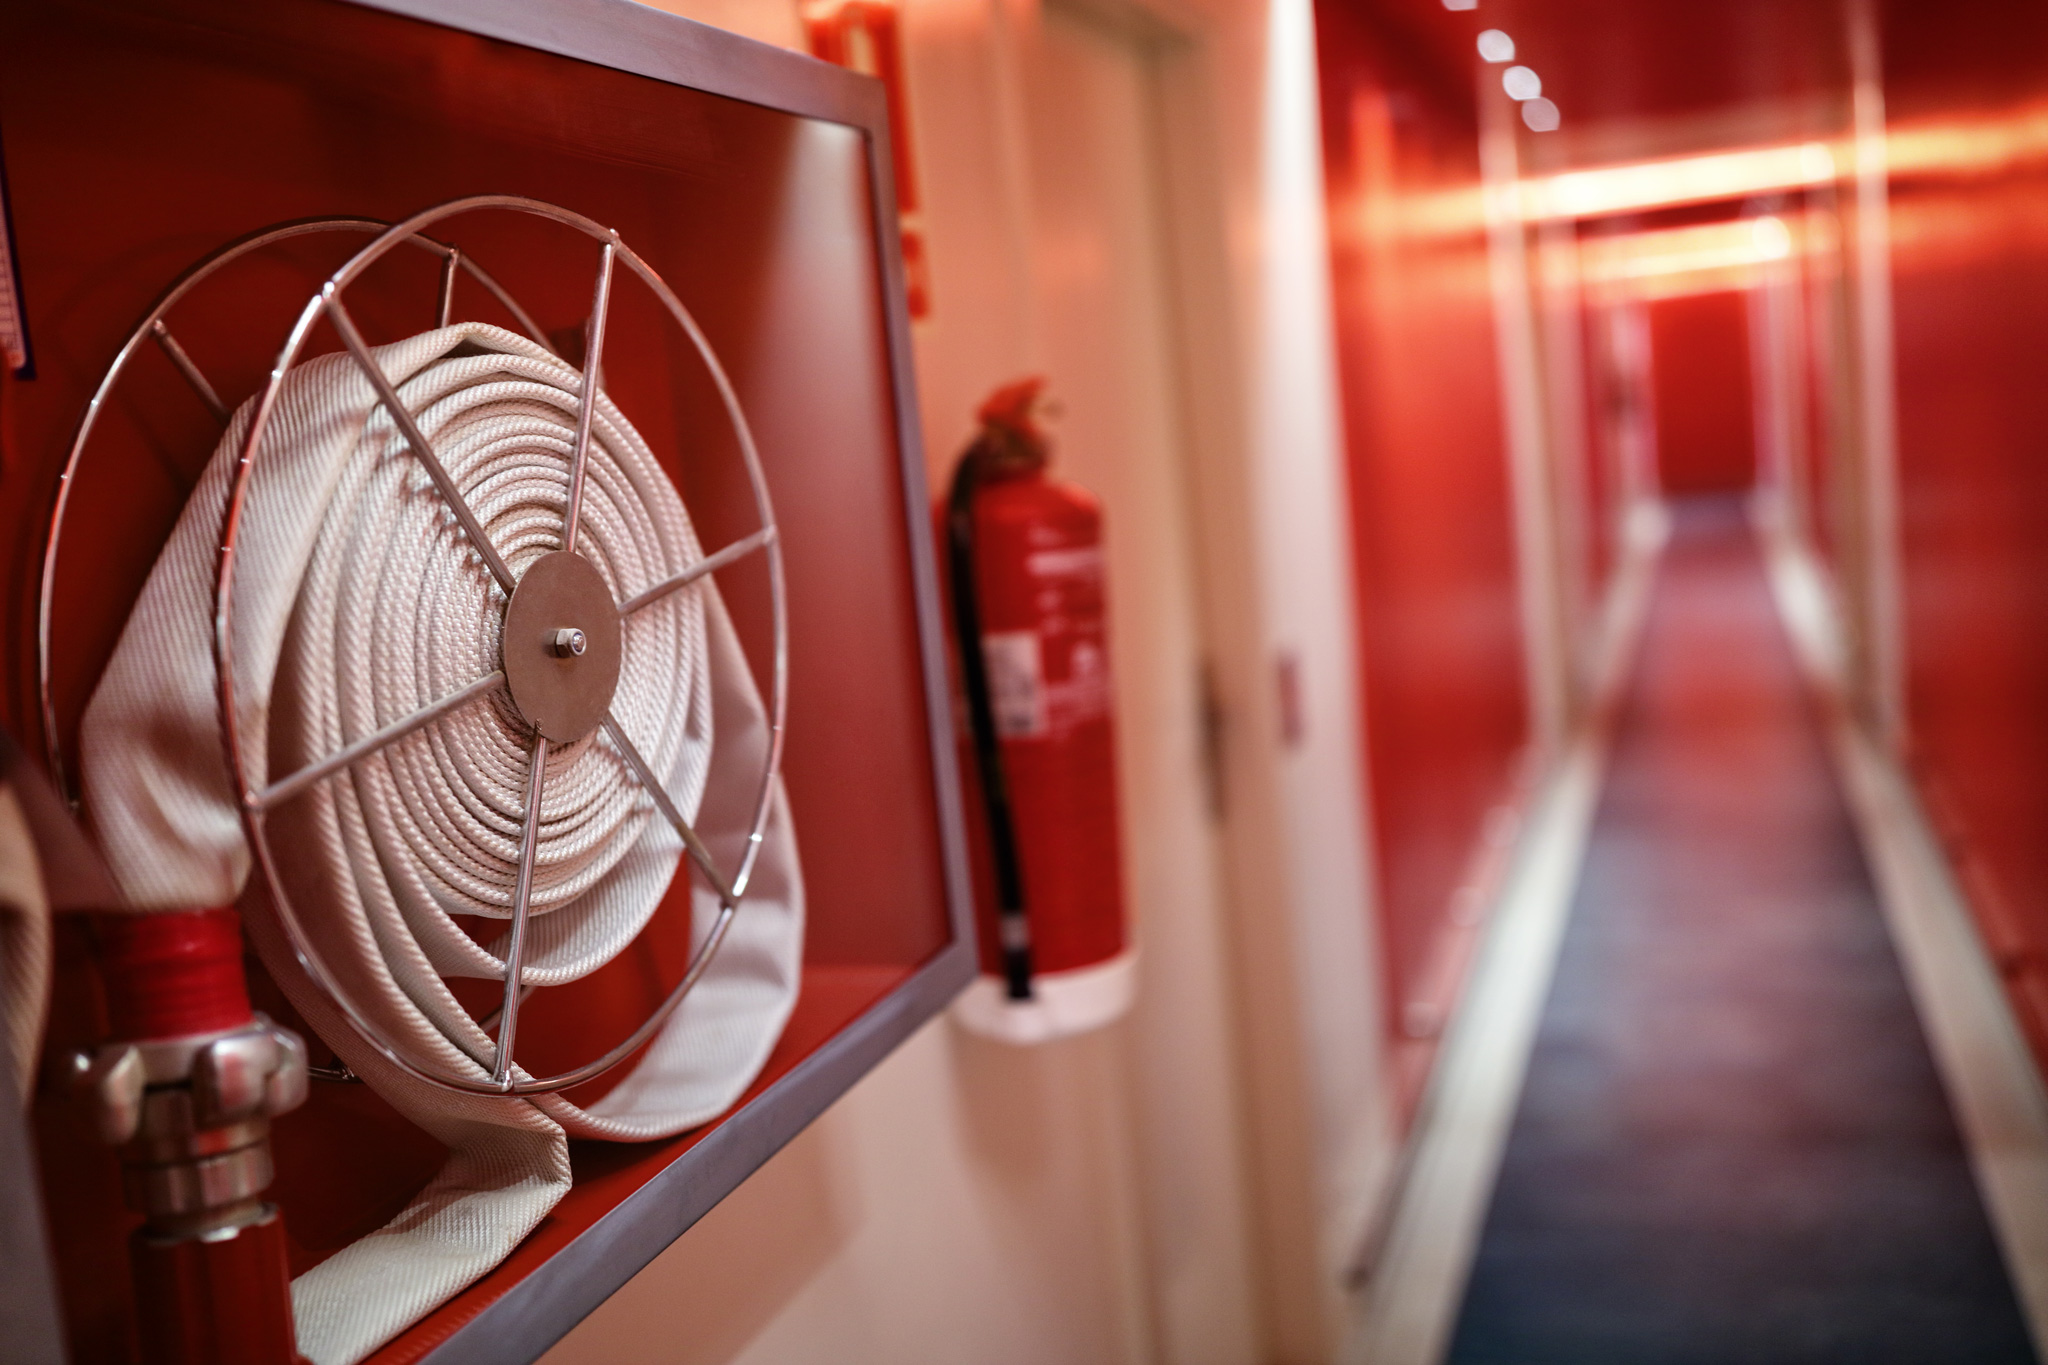 fire-extinguisher-and-hose-reel-in-hotel-corridor-P7Q39E9